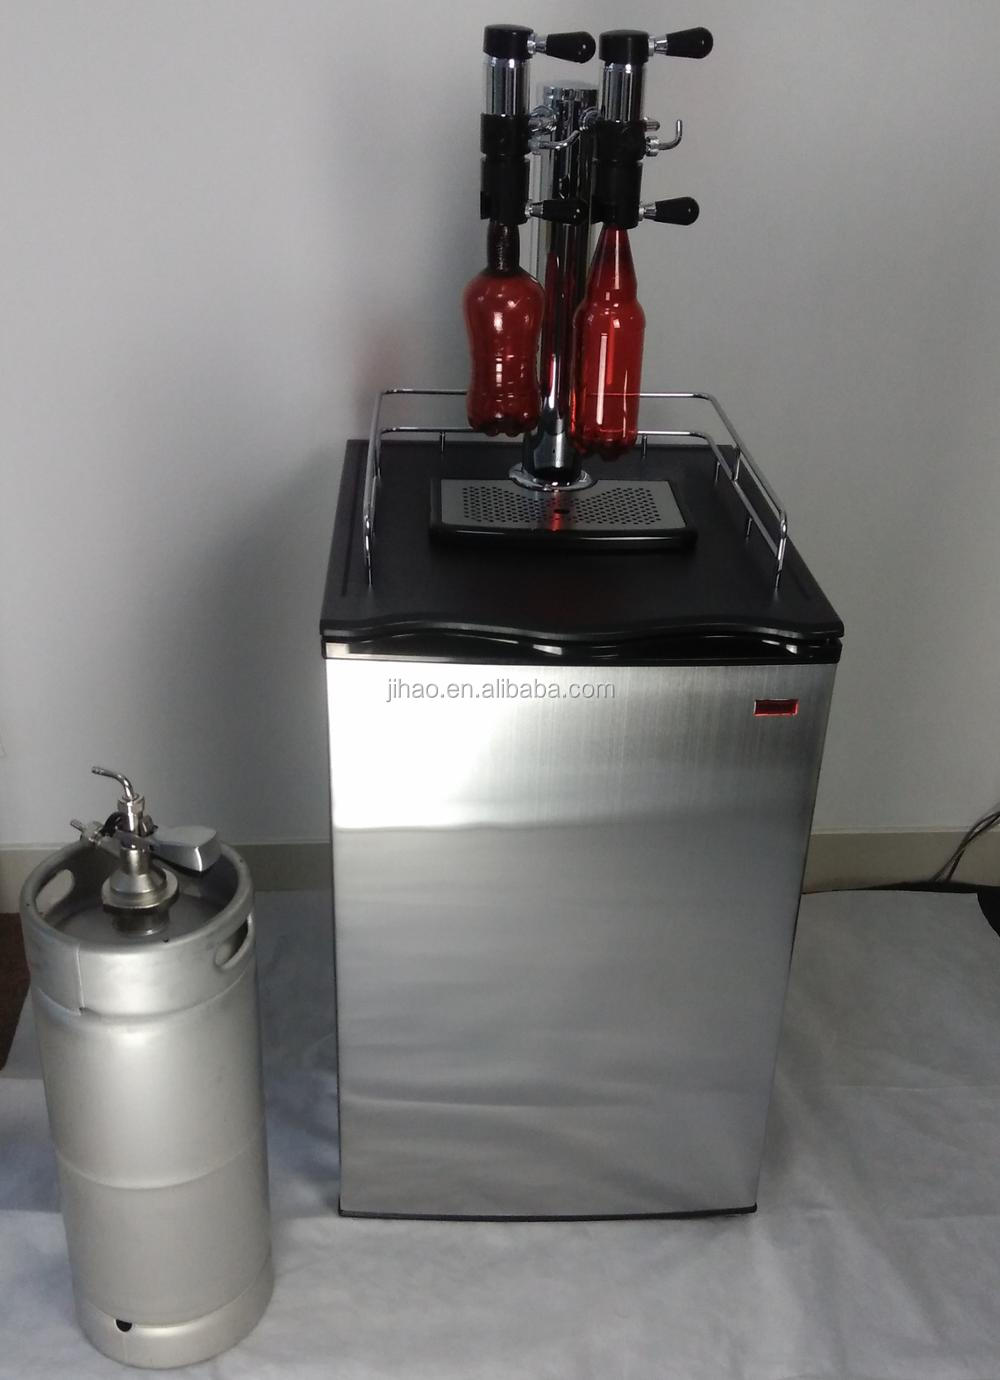 GHO Beer Keg Cooler with bottle filler taps